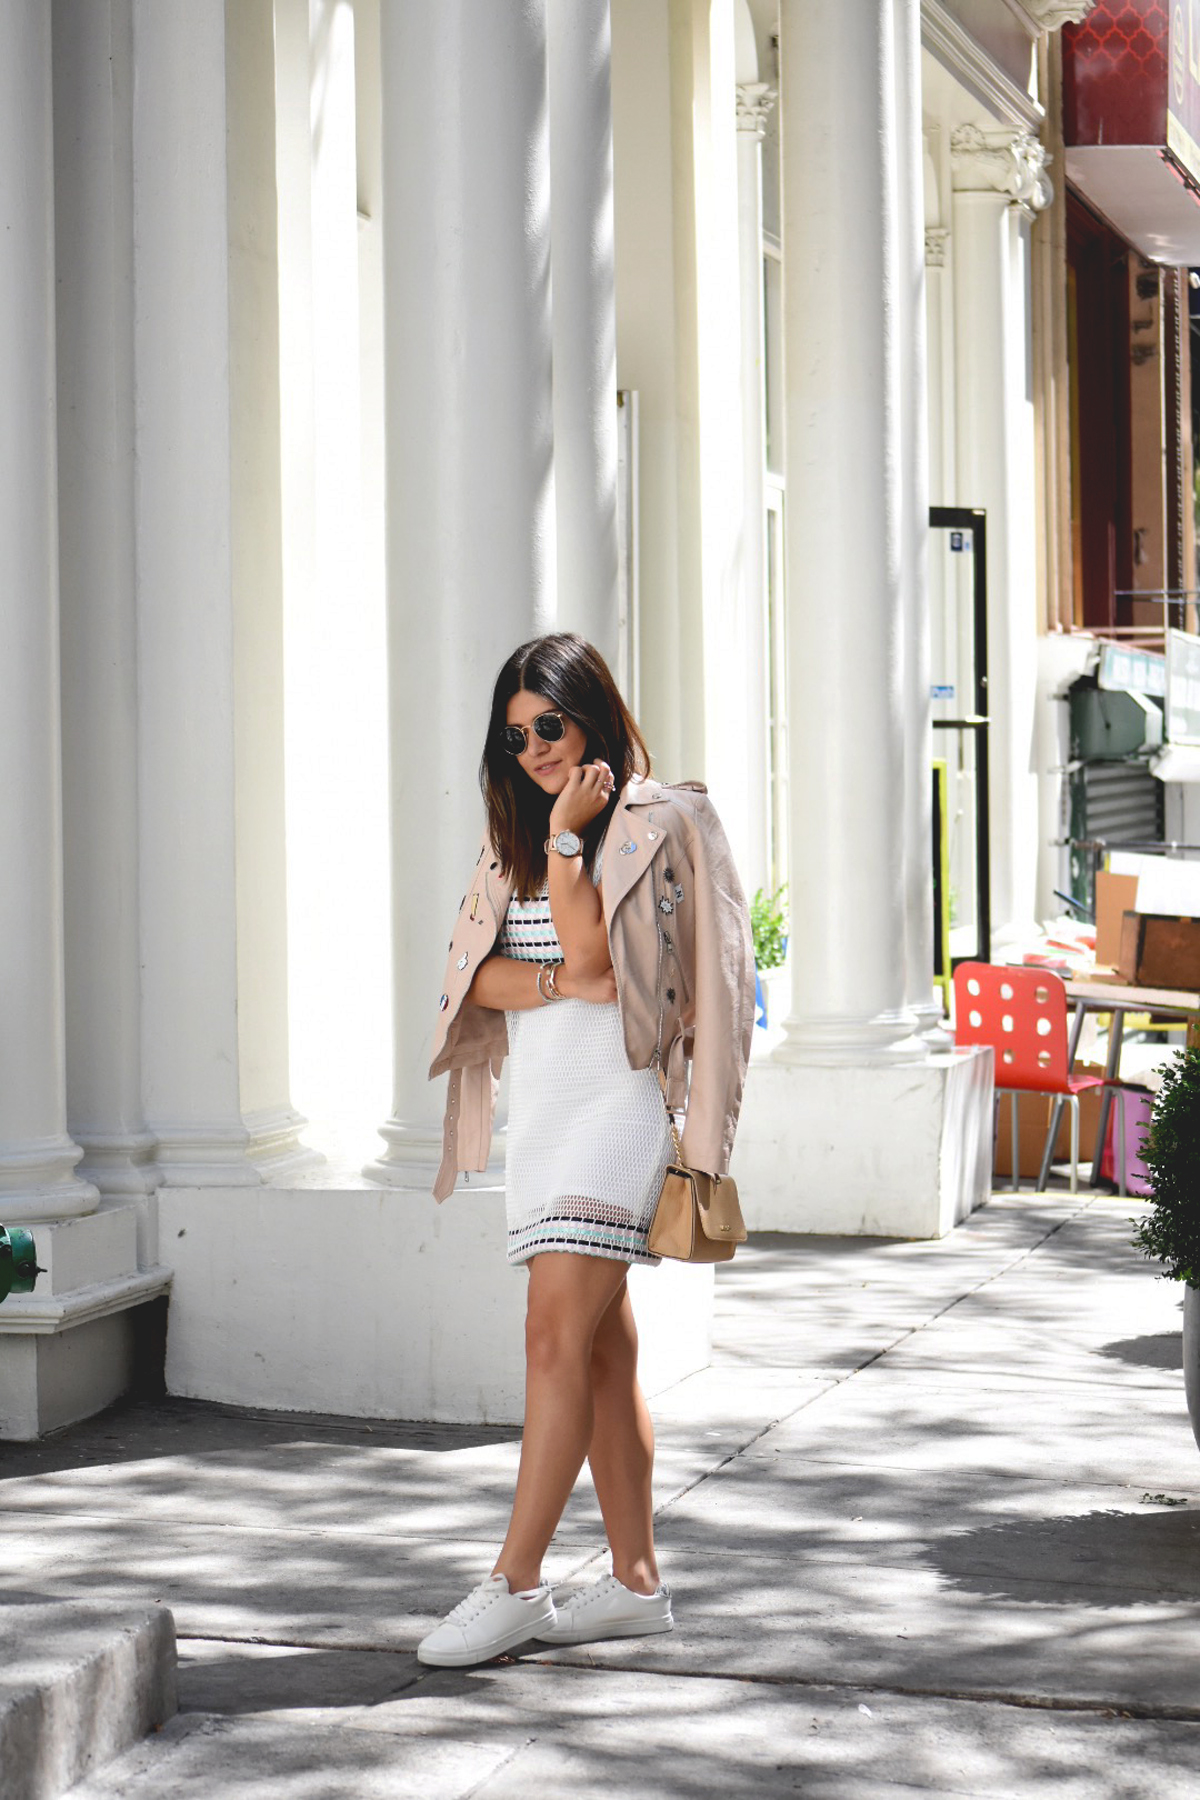 Carolina Hellal of Chic Talk wearing a Tobi mesh dress, Dezzal faux pink ;eather jacket, and h&m white sneaks in New York City during nyfw